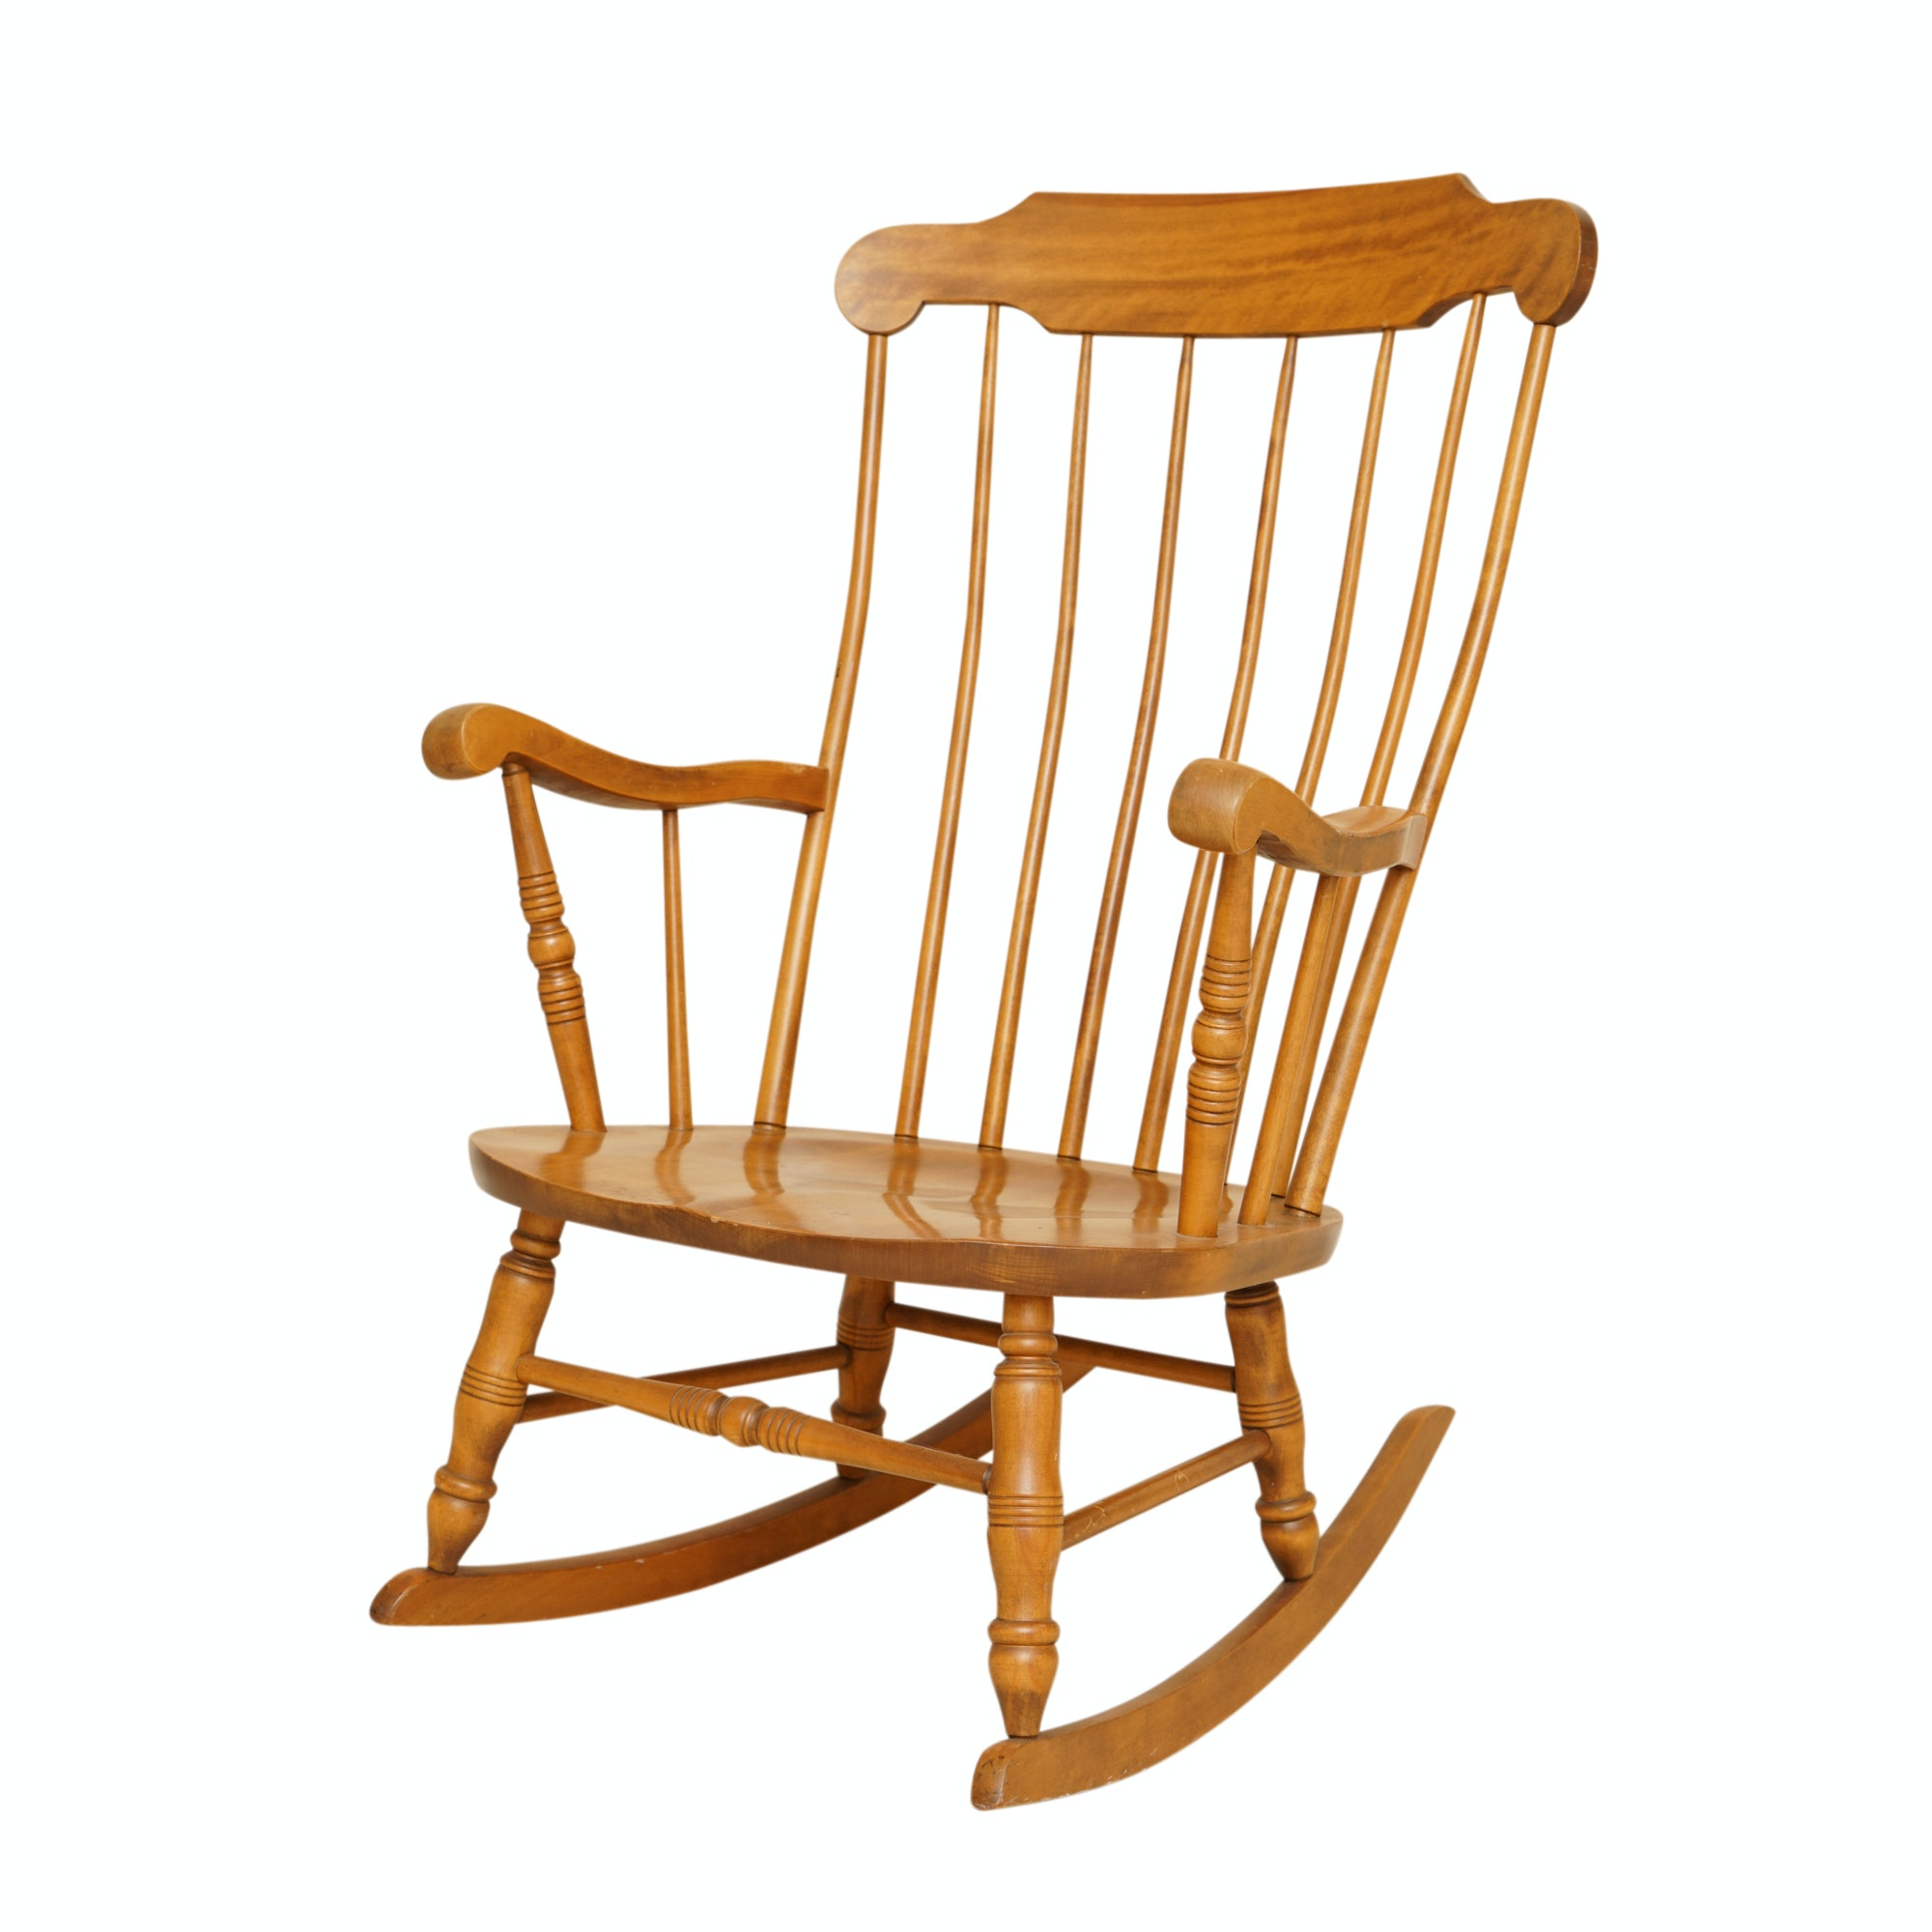 Merveilleux Vintage Maple Rocking Chair By S. Bent U0026 Bros.